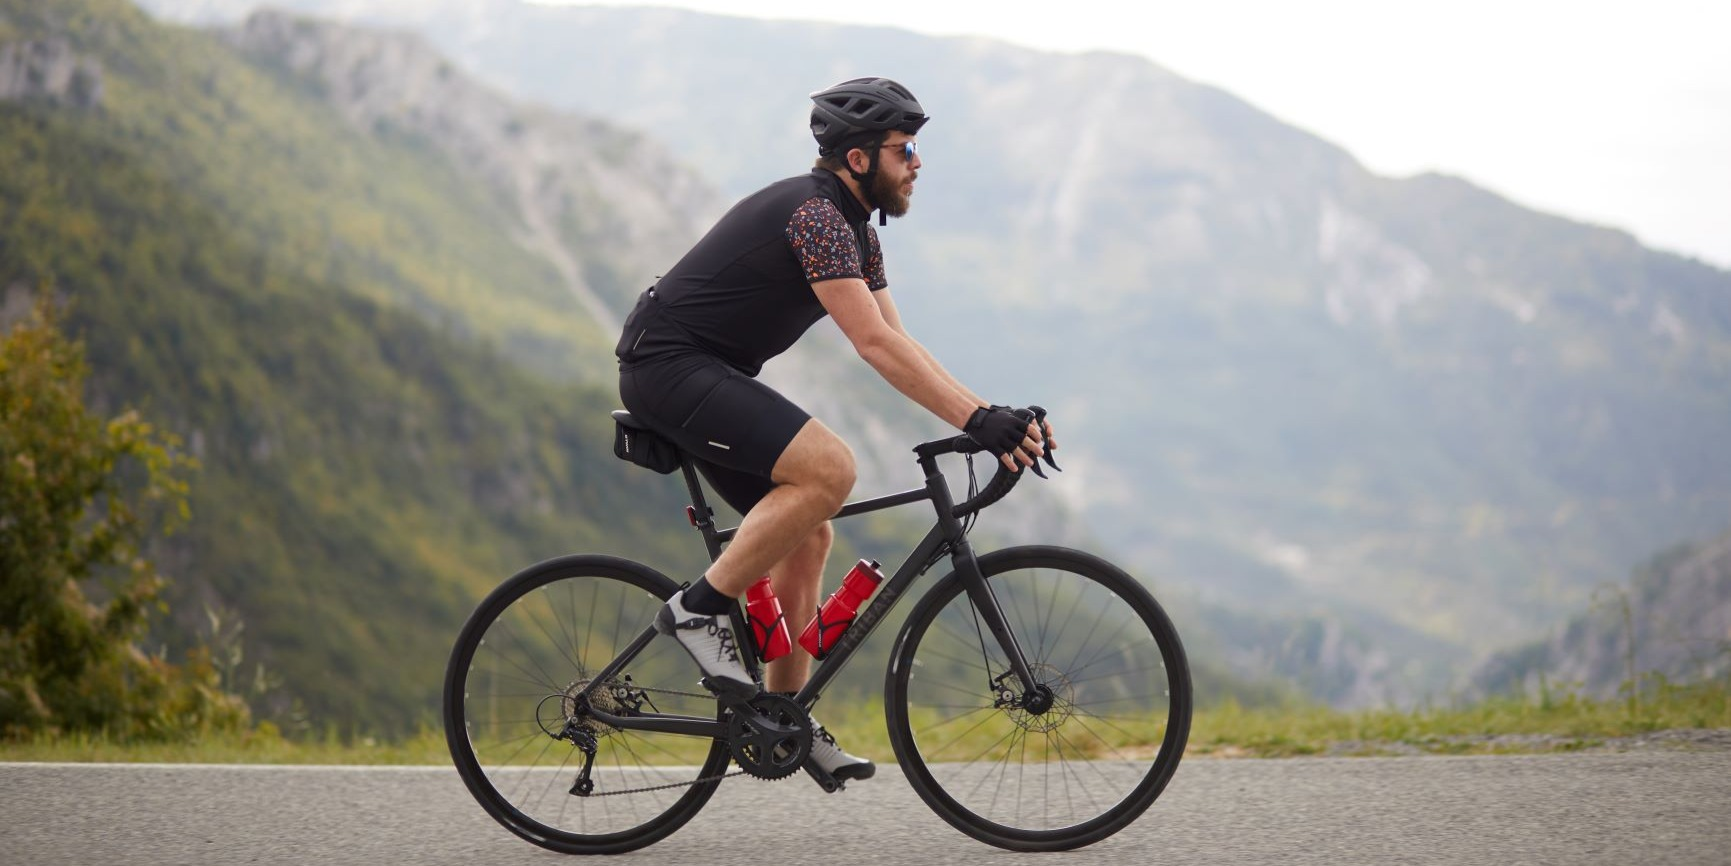 4 Road Bike Adjustments To Help You Find The Right Riding Position